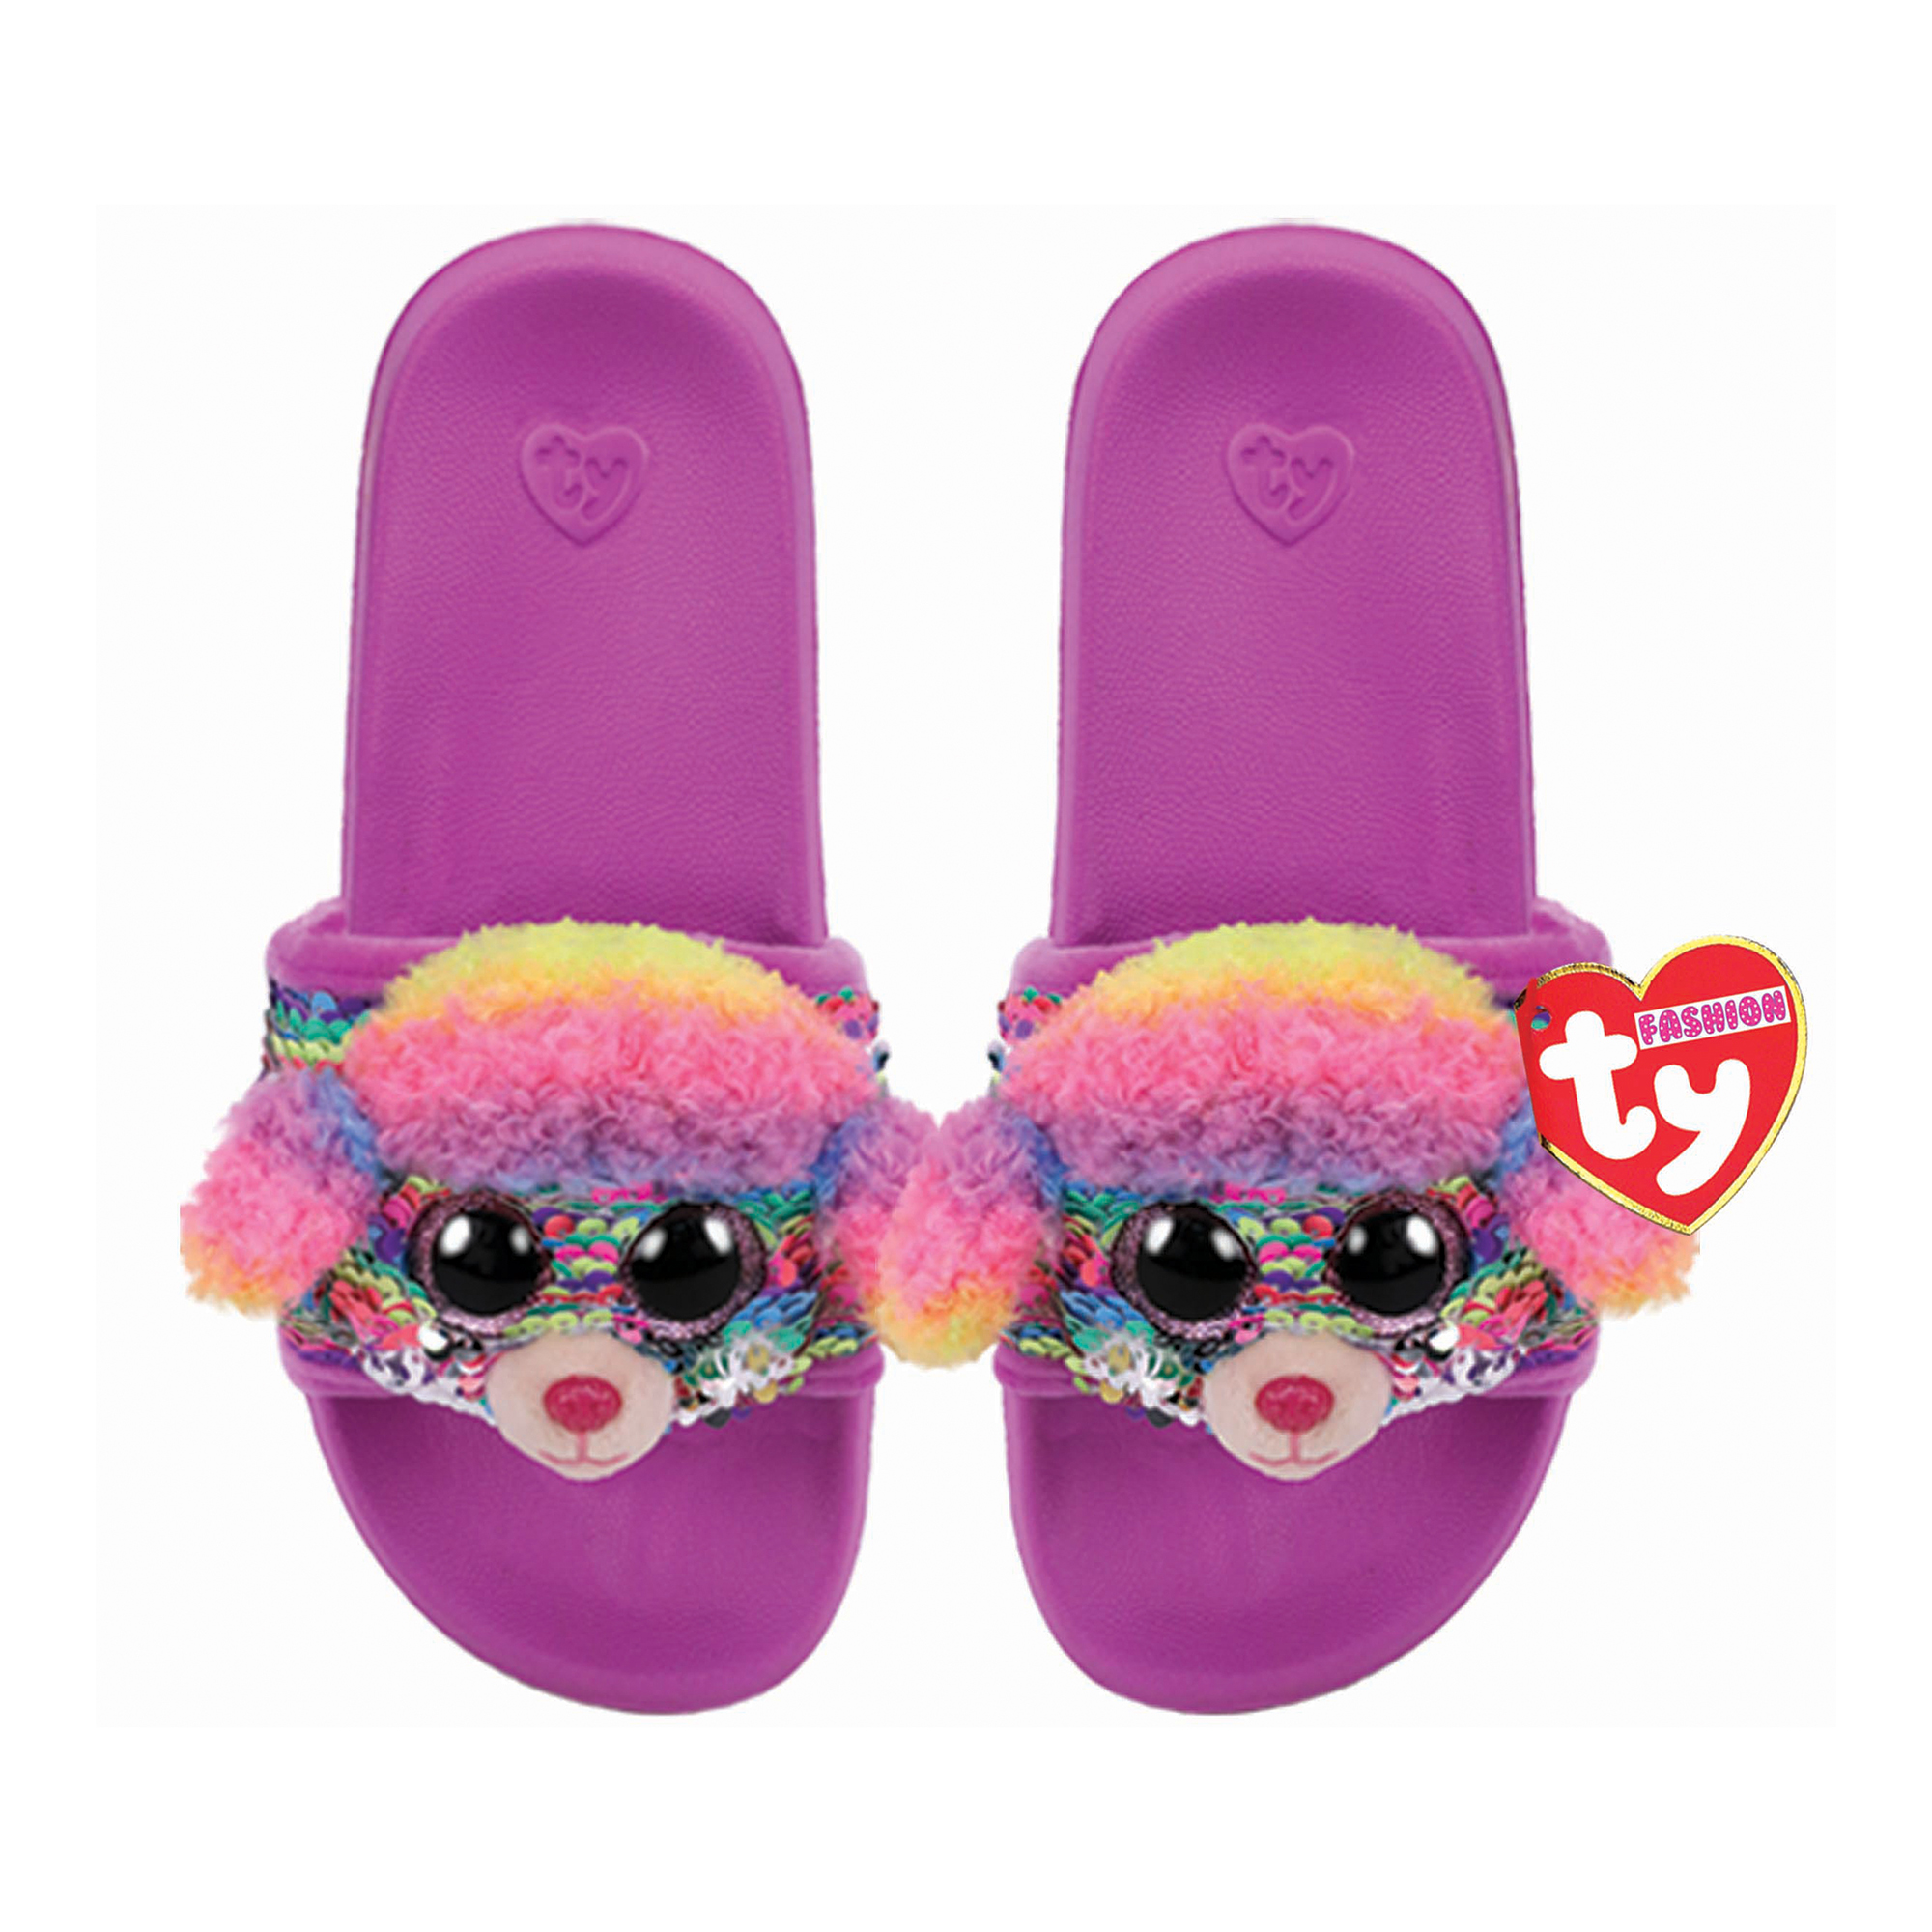 Picture of TY Rainbow Flip Slides Sandals Small